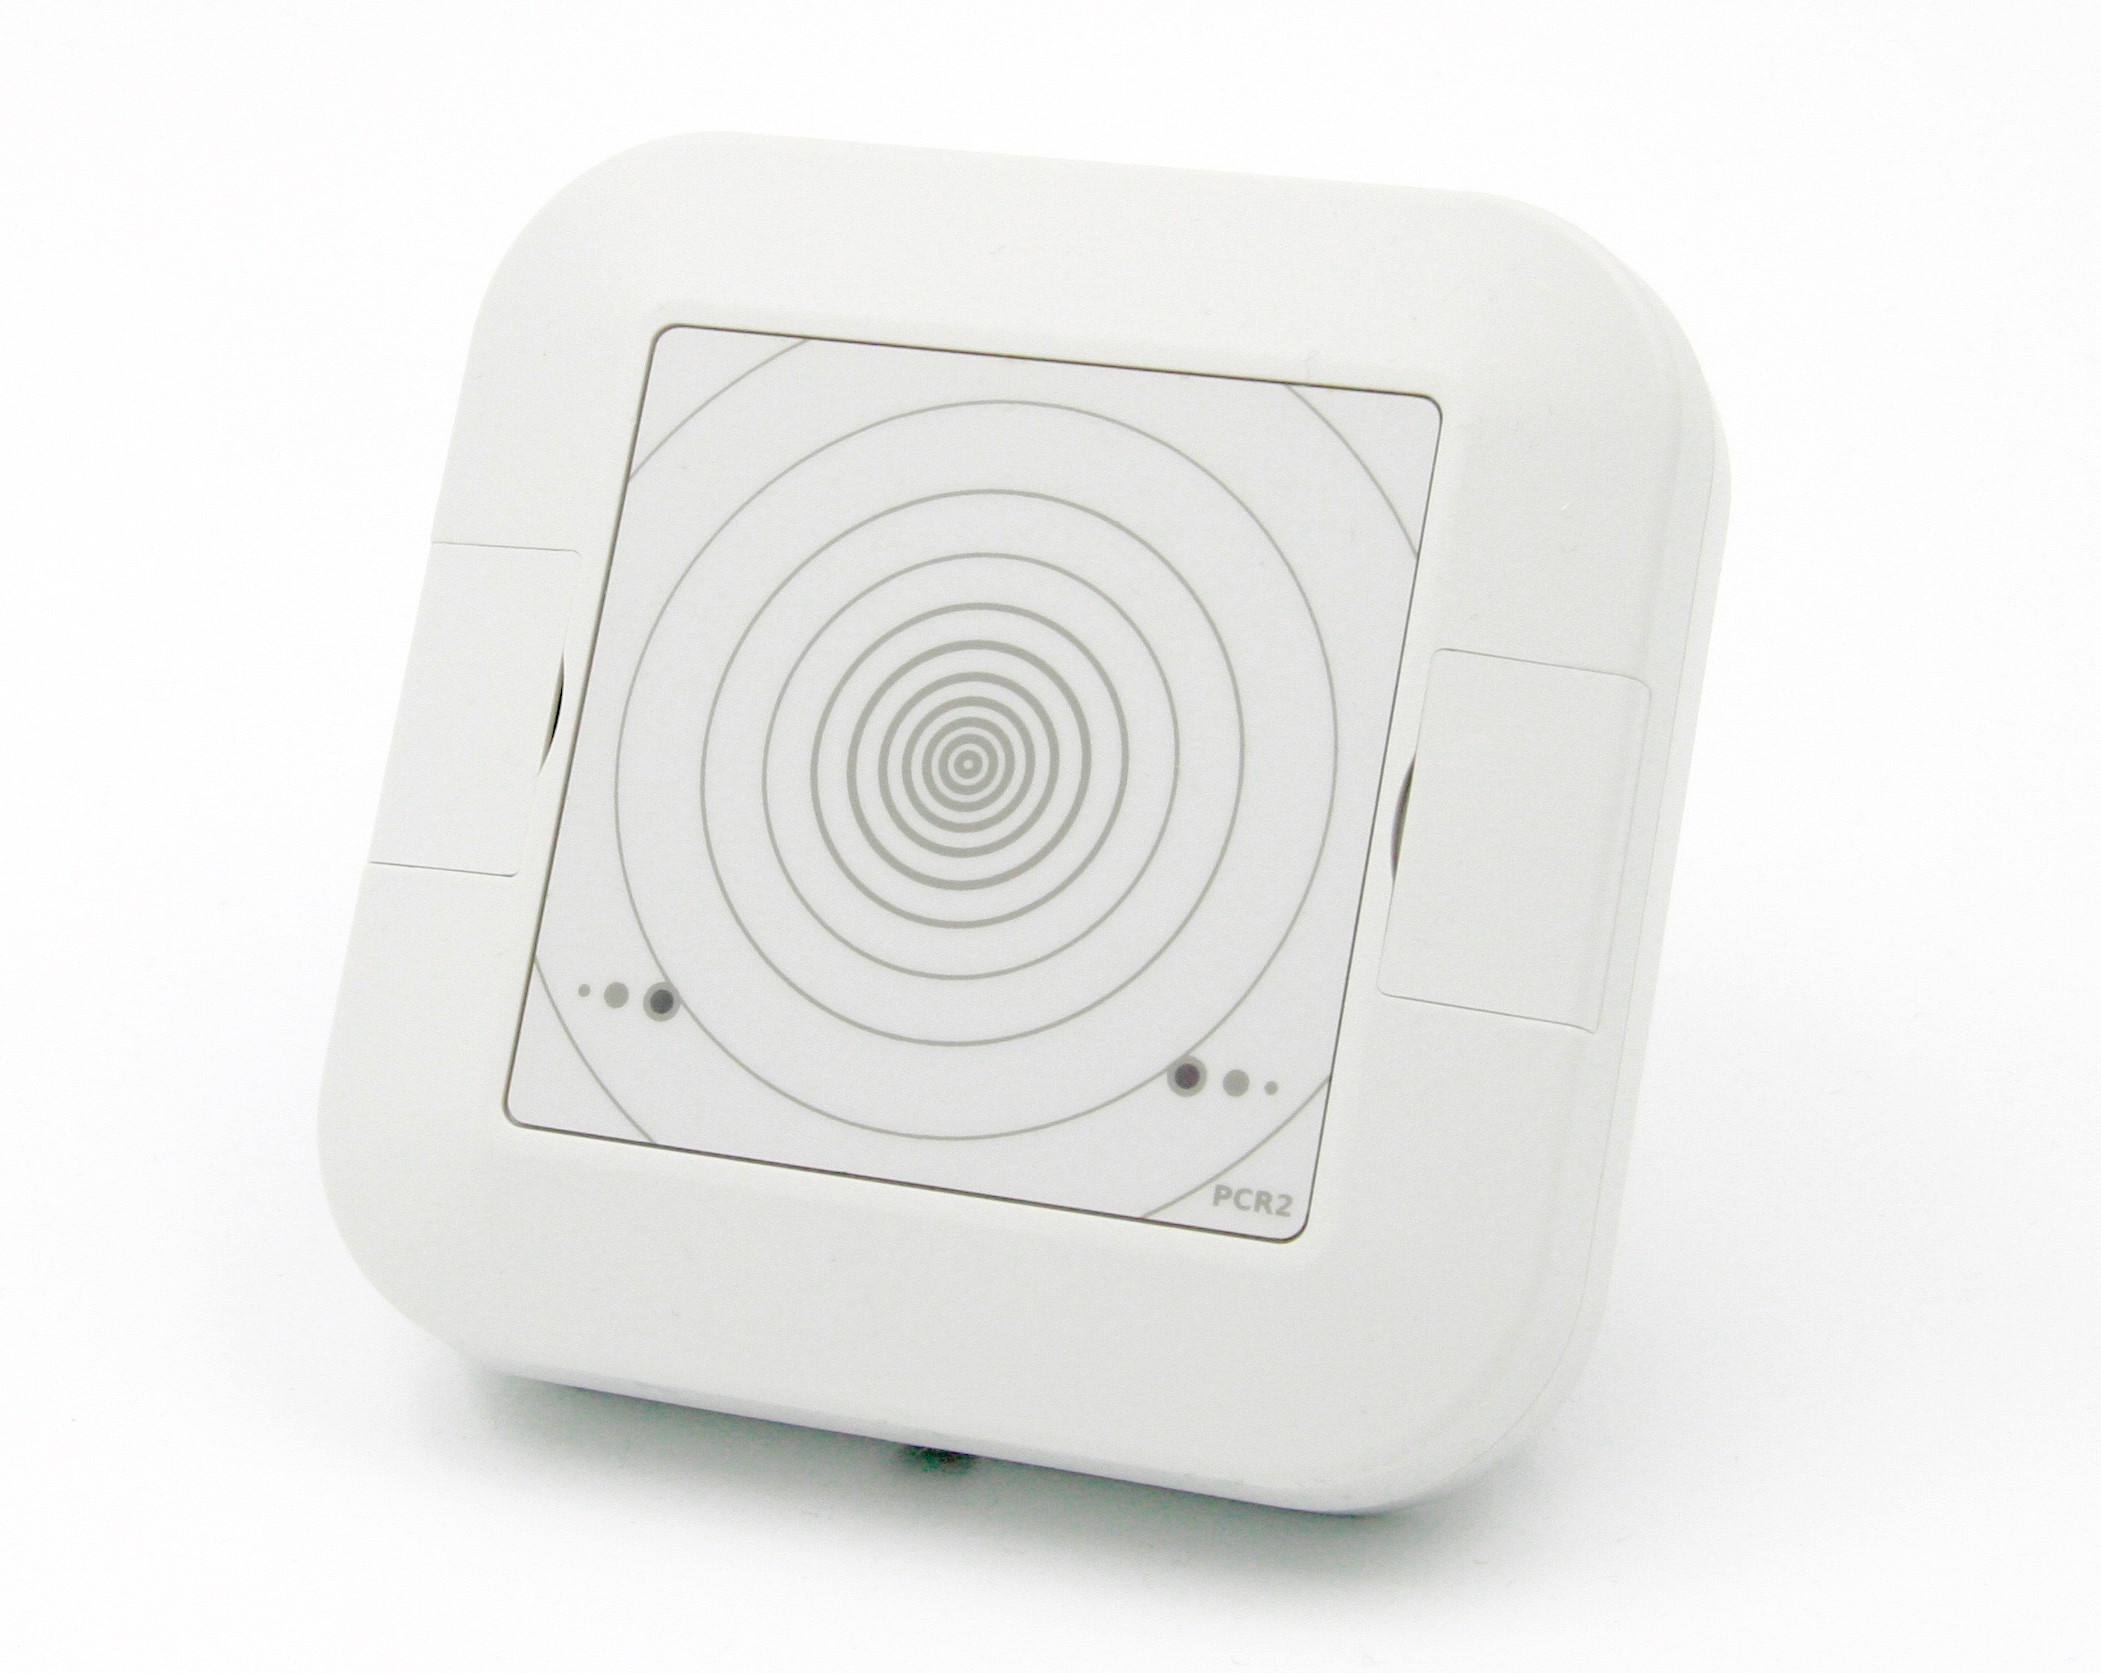 PCR2-IN Indoor Radar Peopleflow Sensor